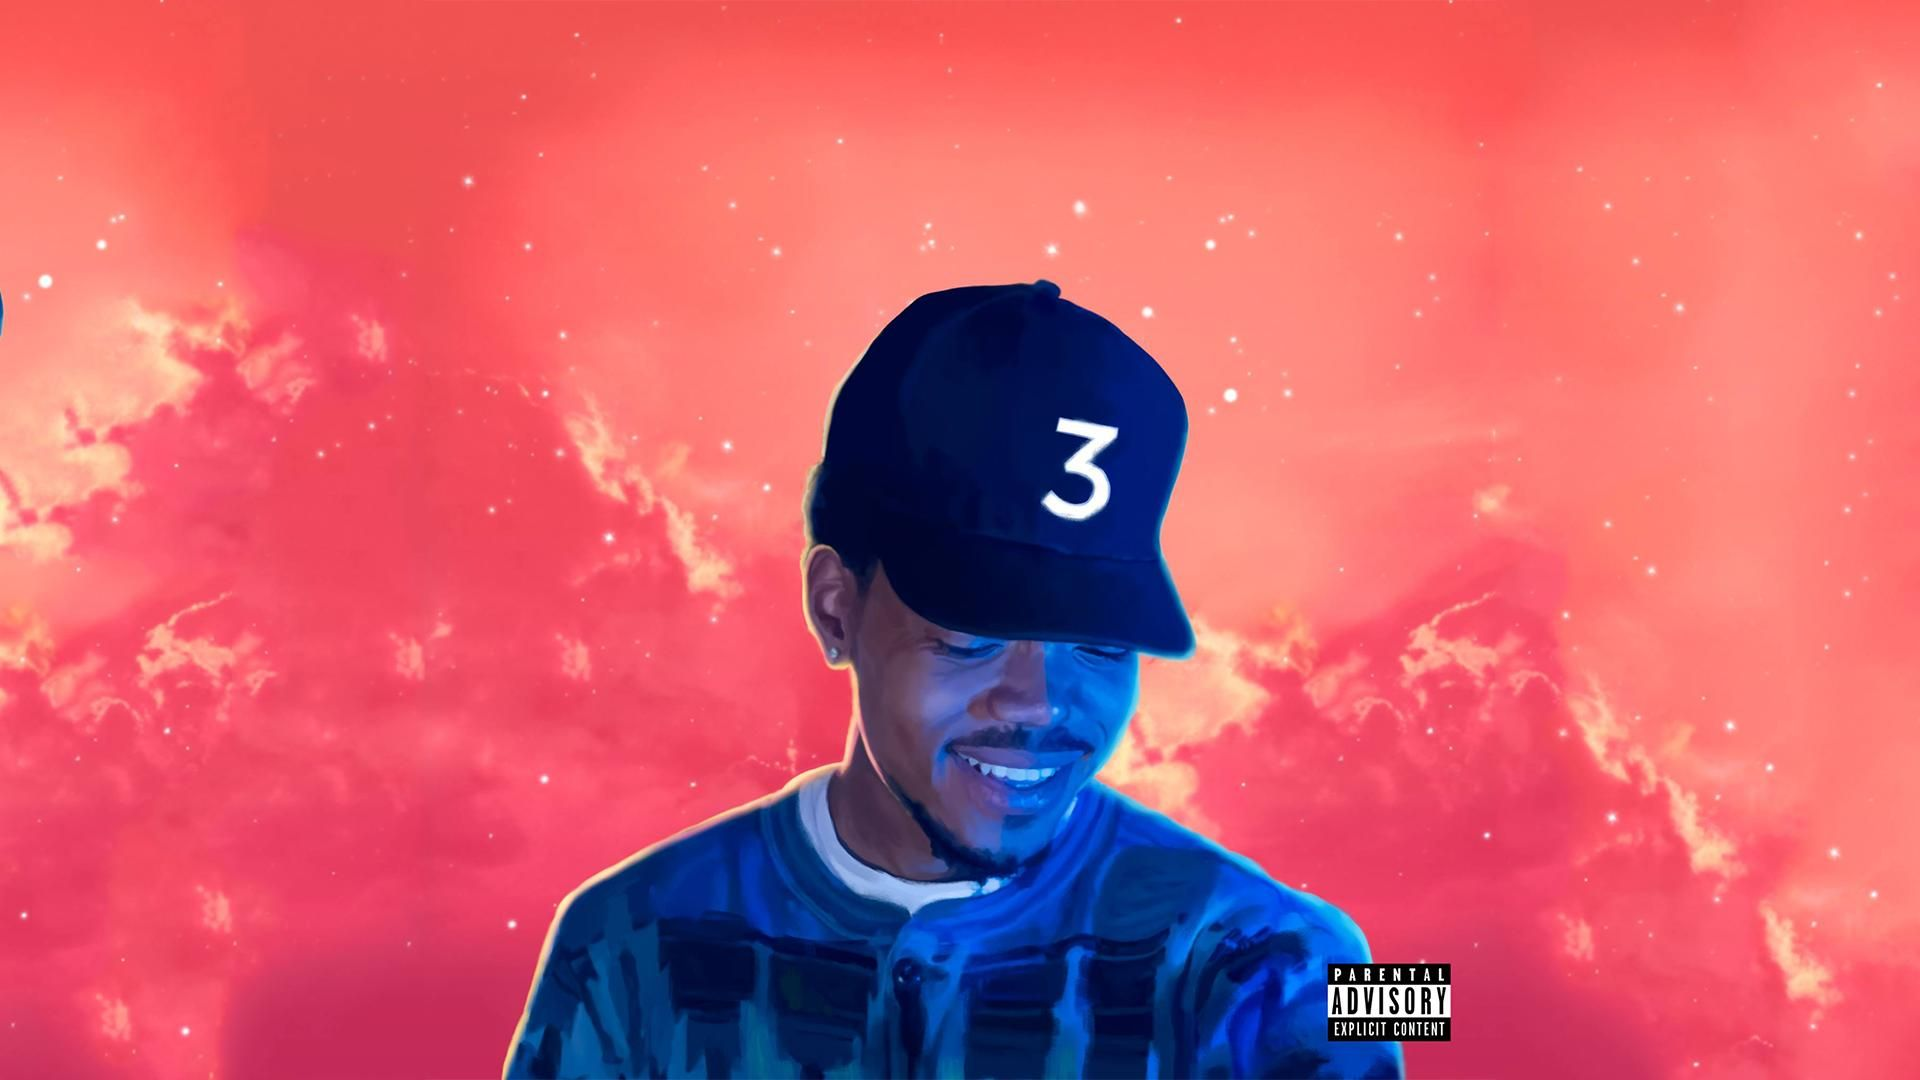 Chance The Rapper Meme Covers